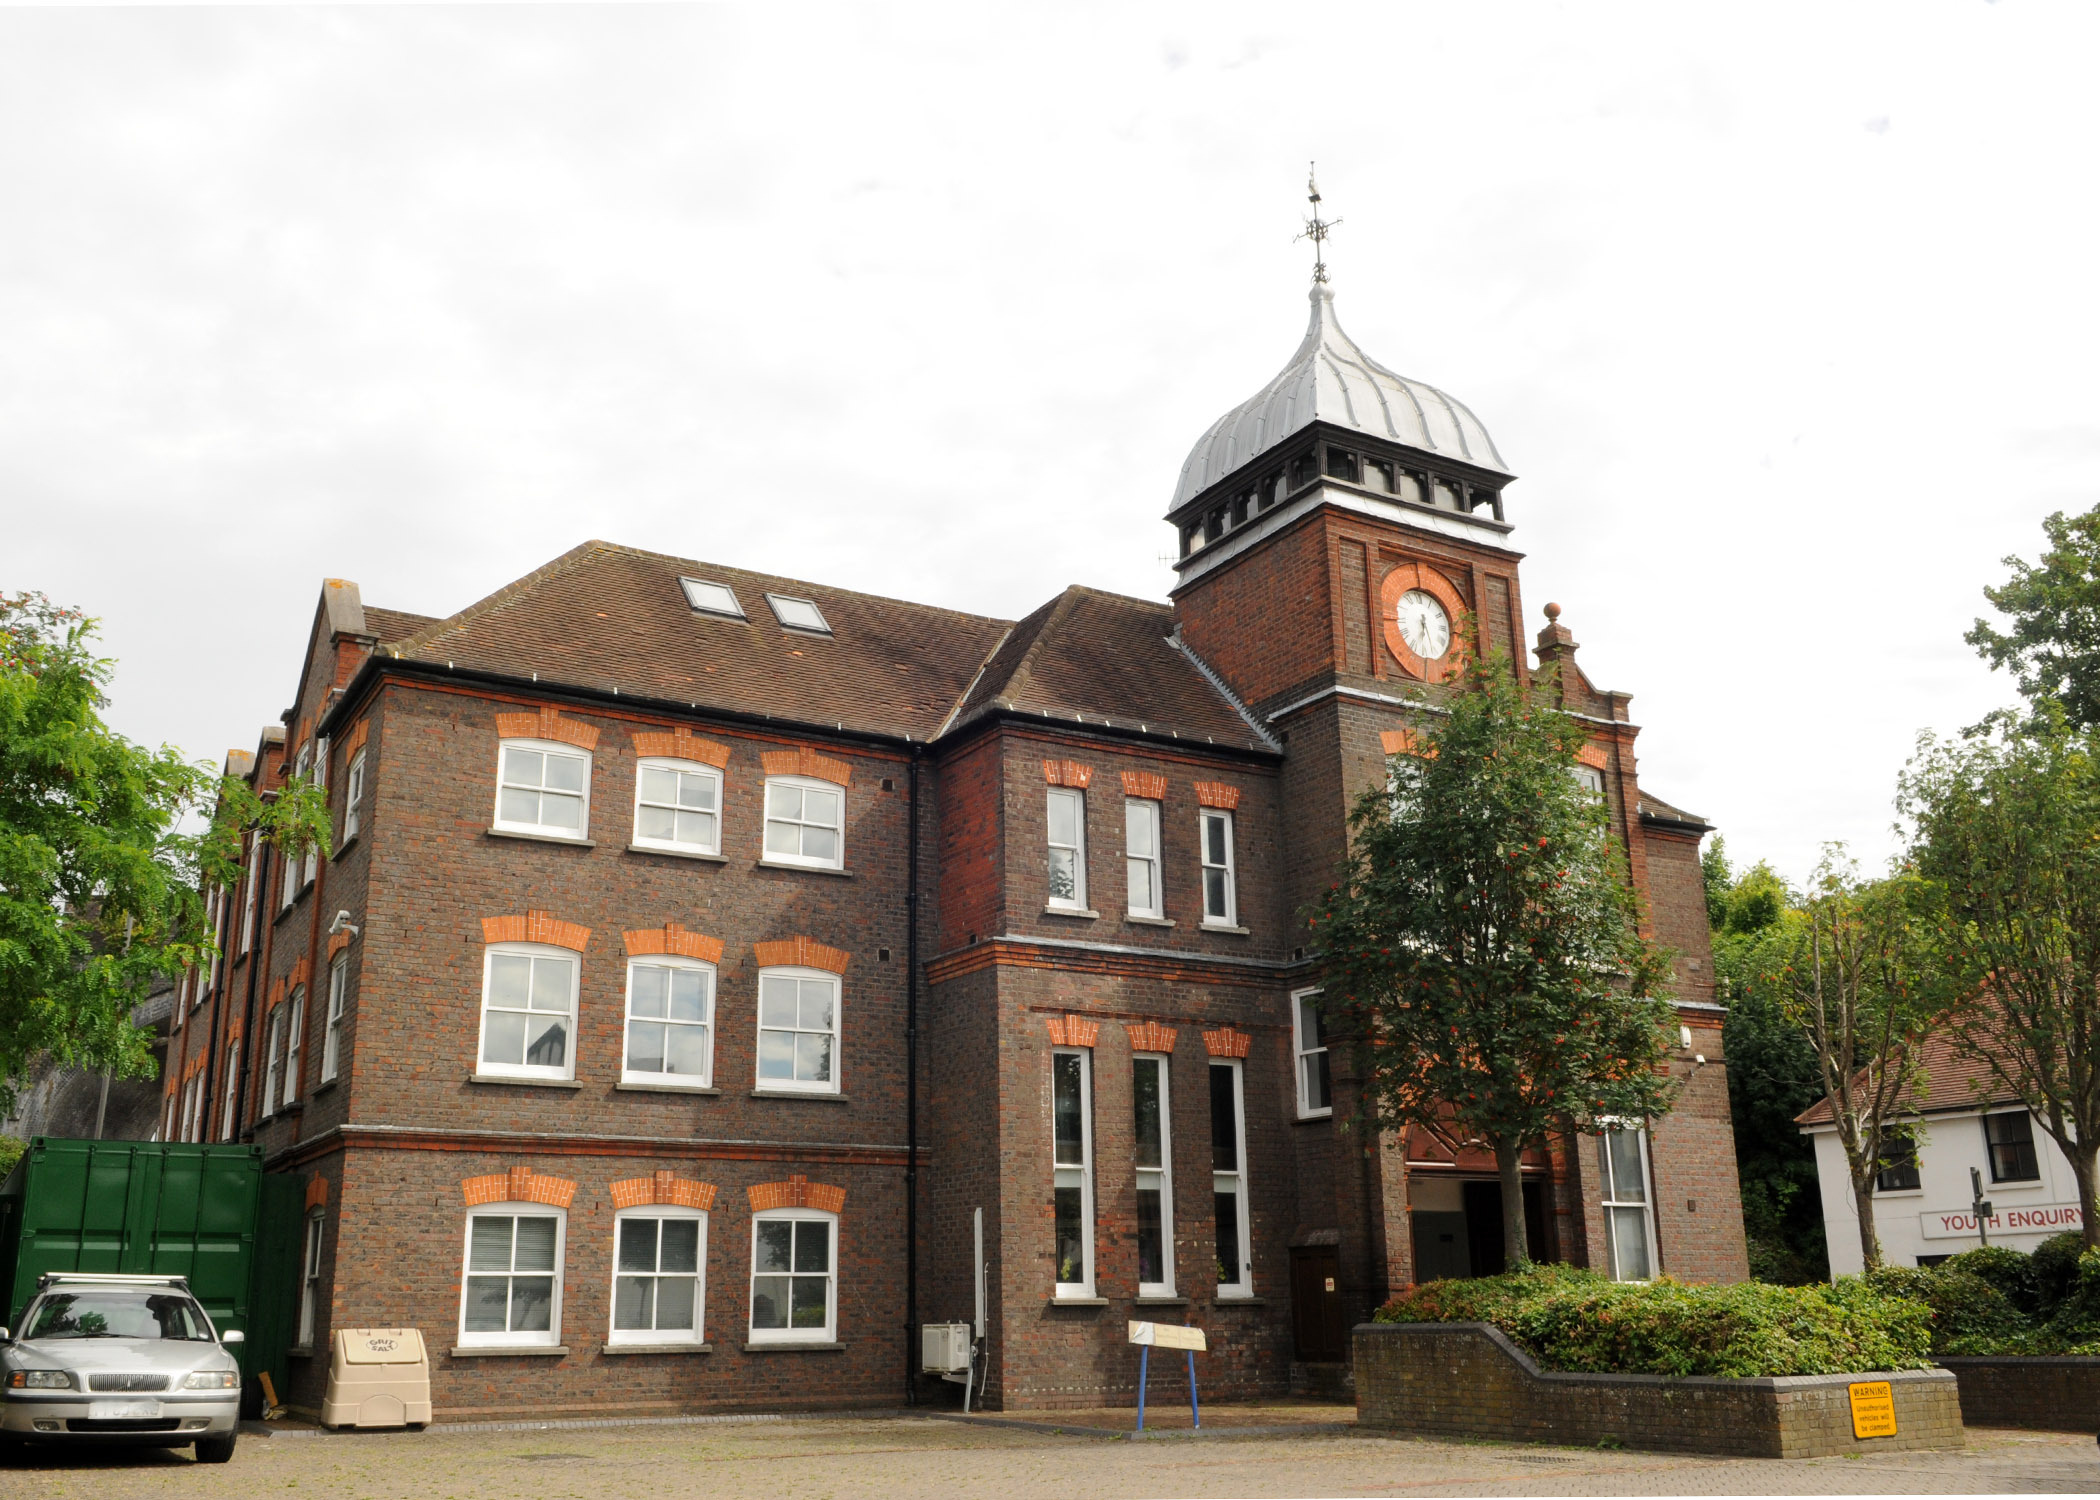 National house building council amersham and wycombe